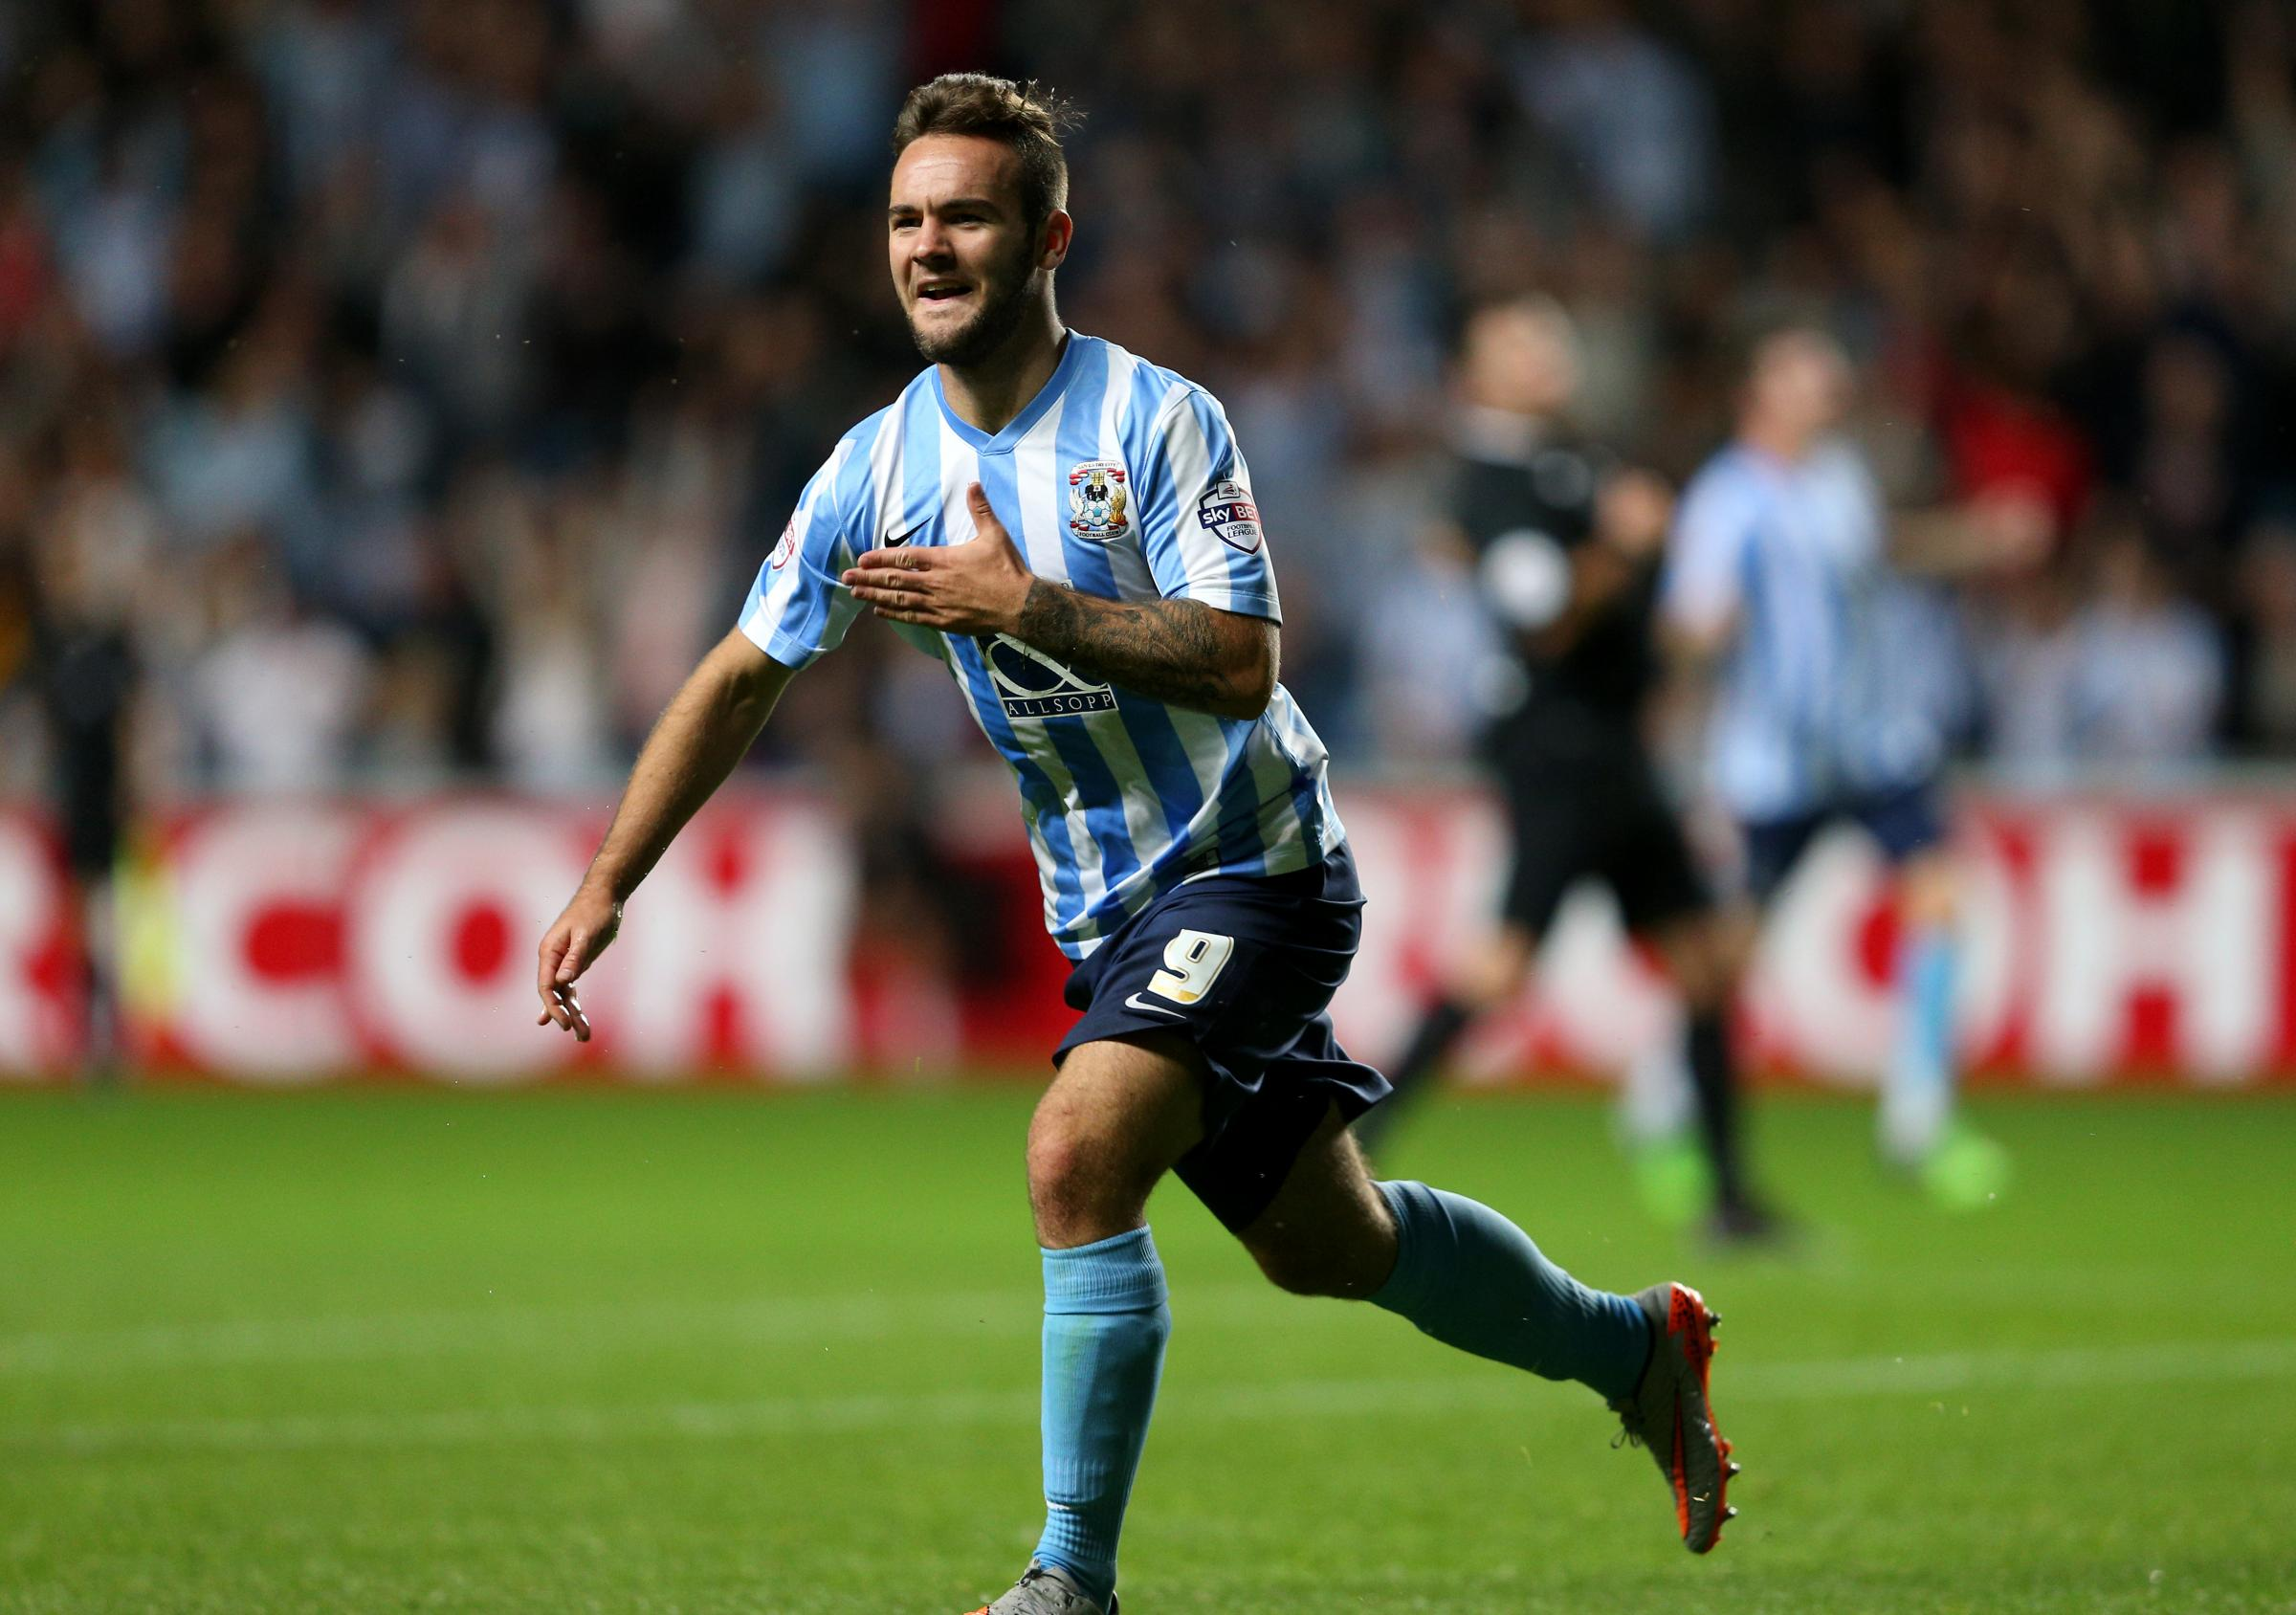 IN DEMAND: Newcastle youngster Adam Armstrong scored 20 goals on loan at Coventry last season